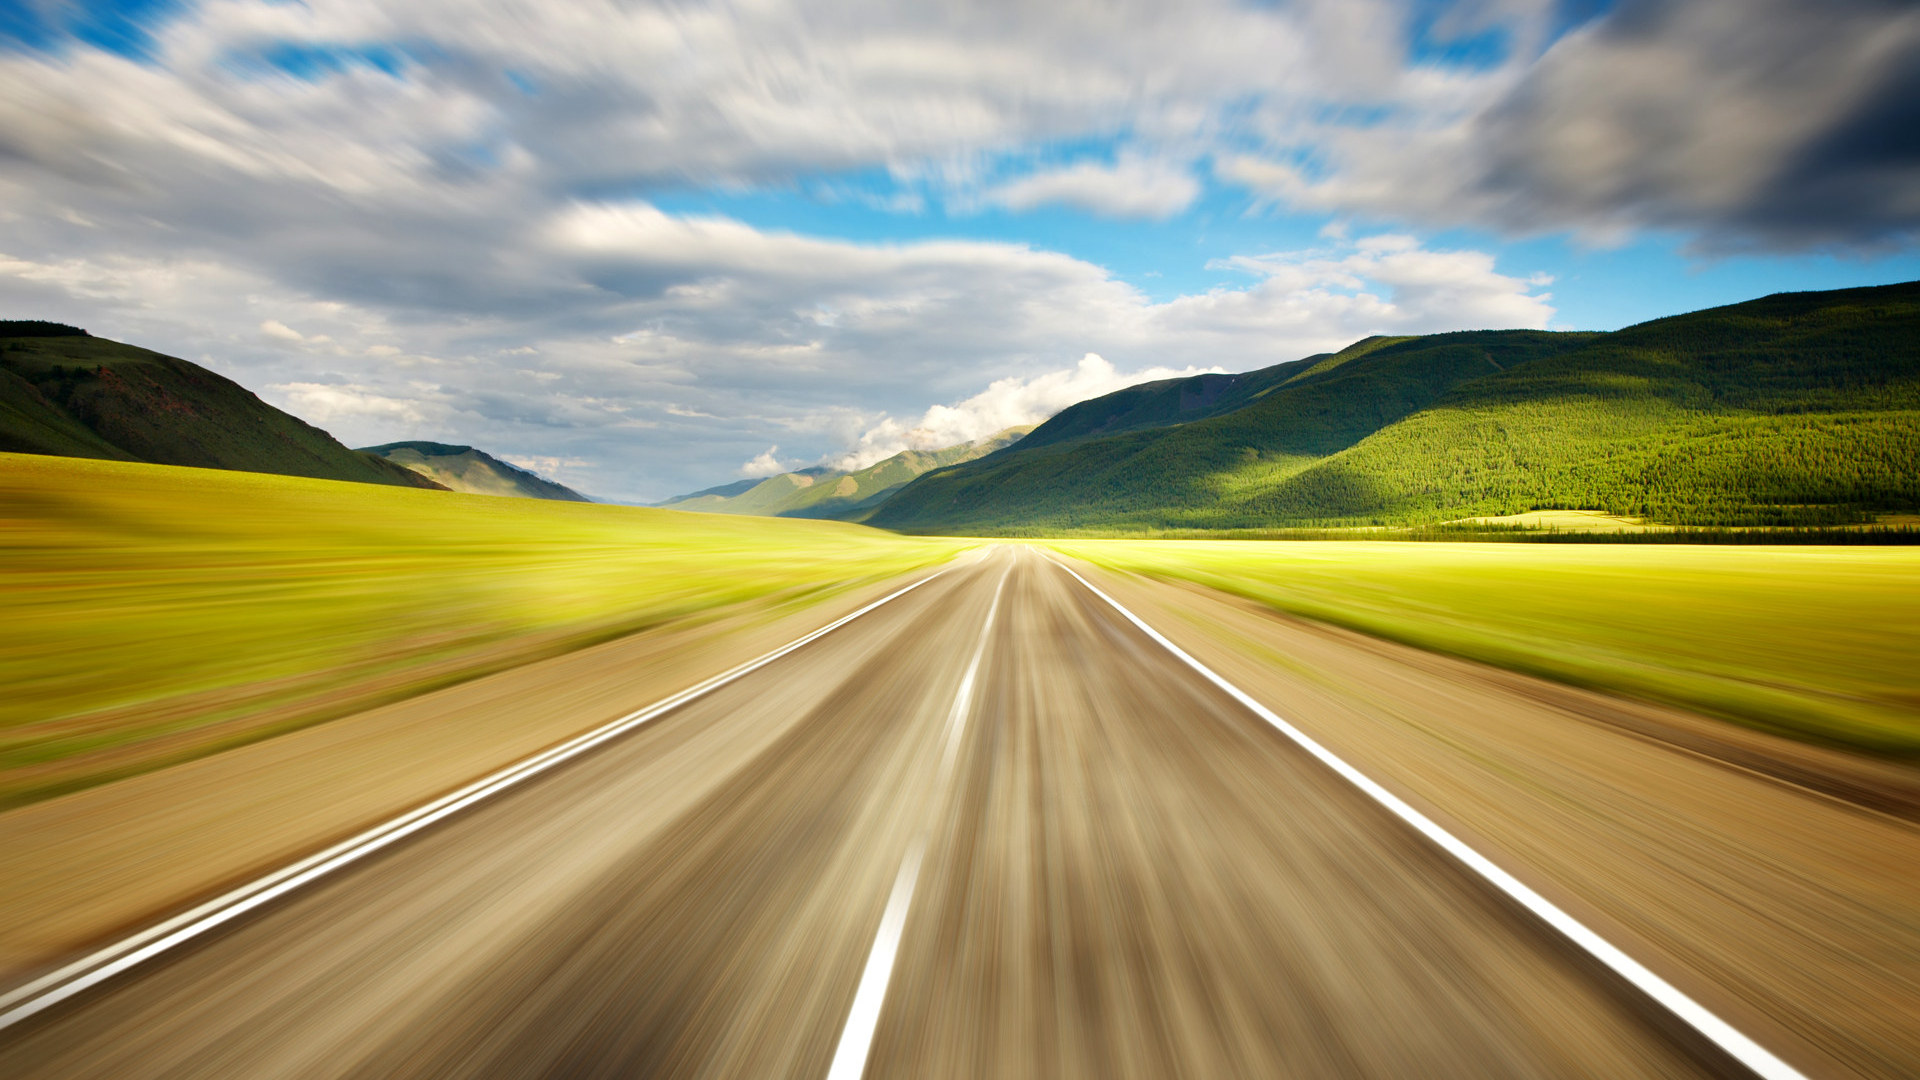 Free Highway Backgrounds Amp Highway Wallpaper Images In Hd